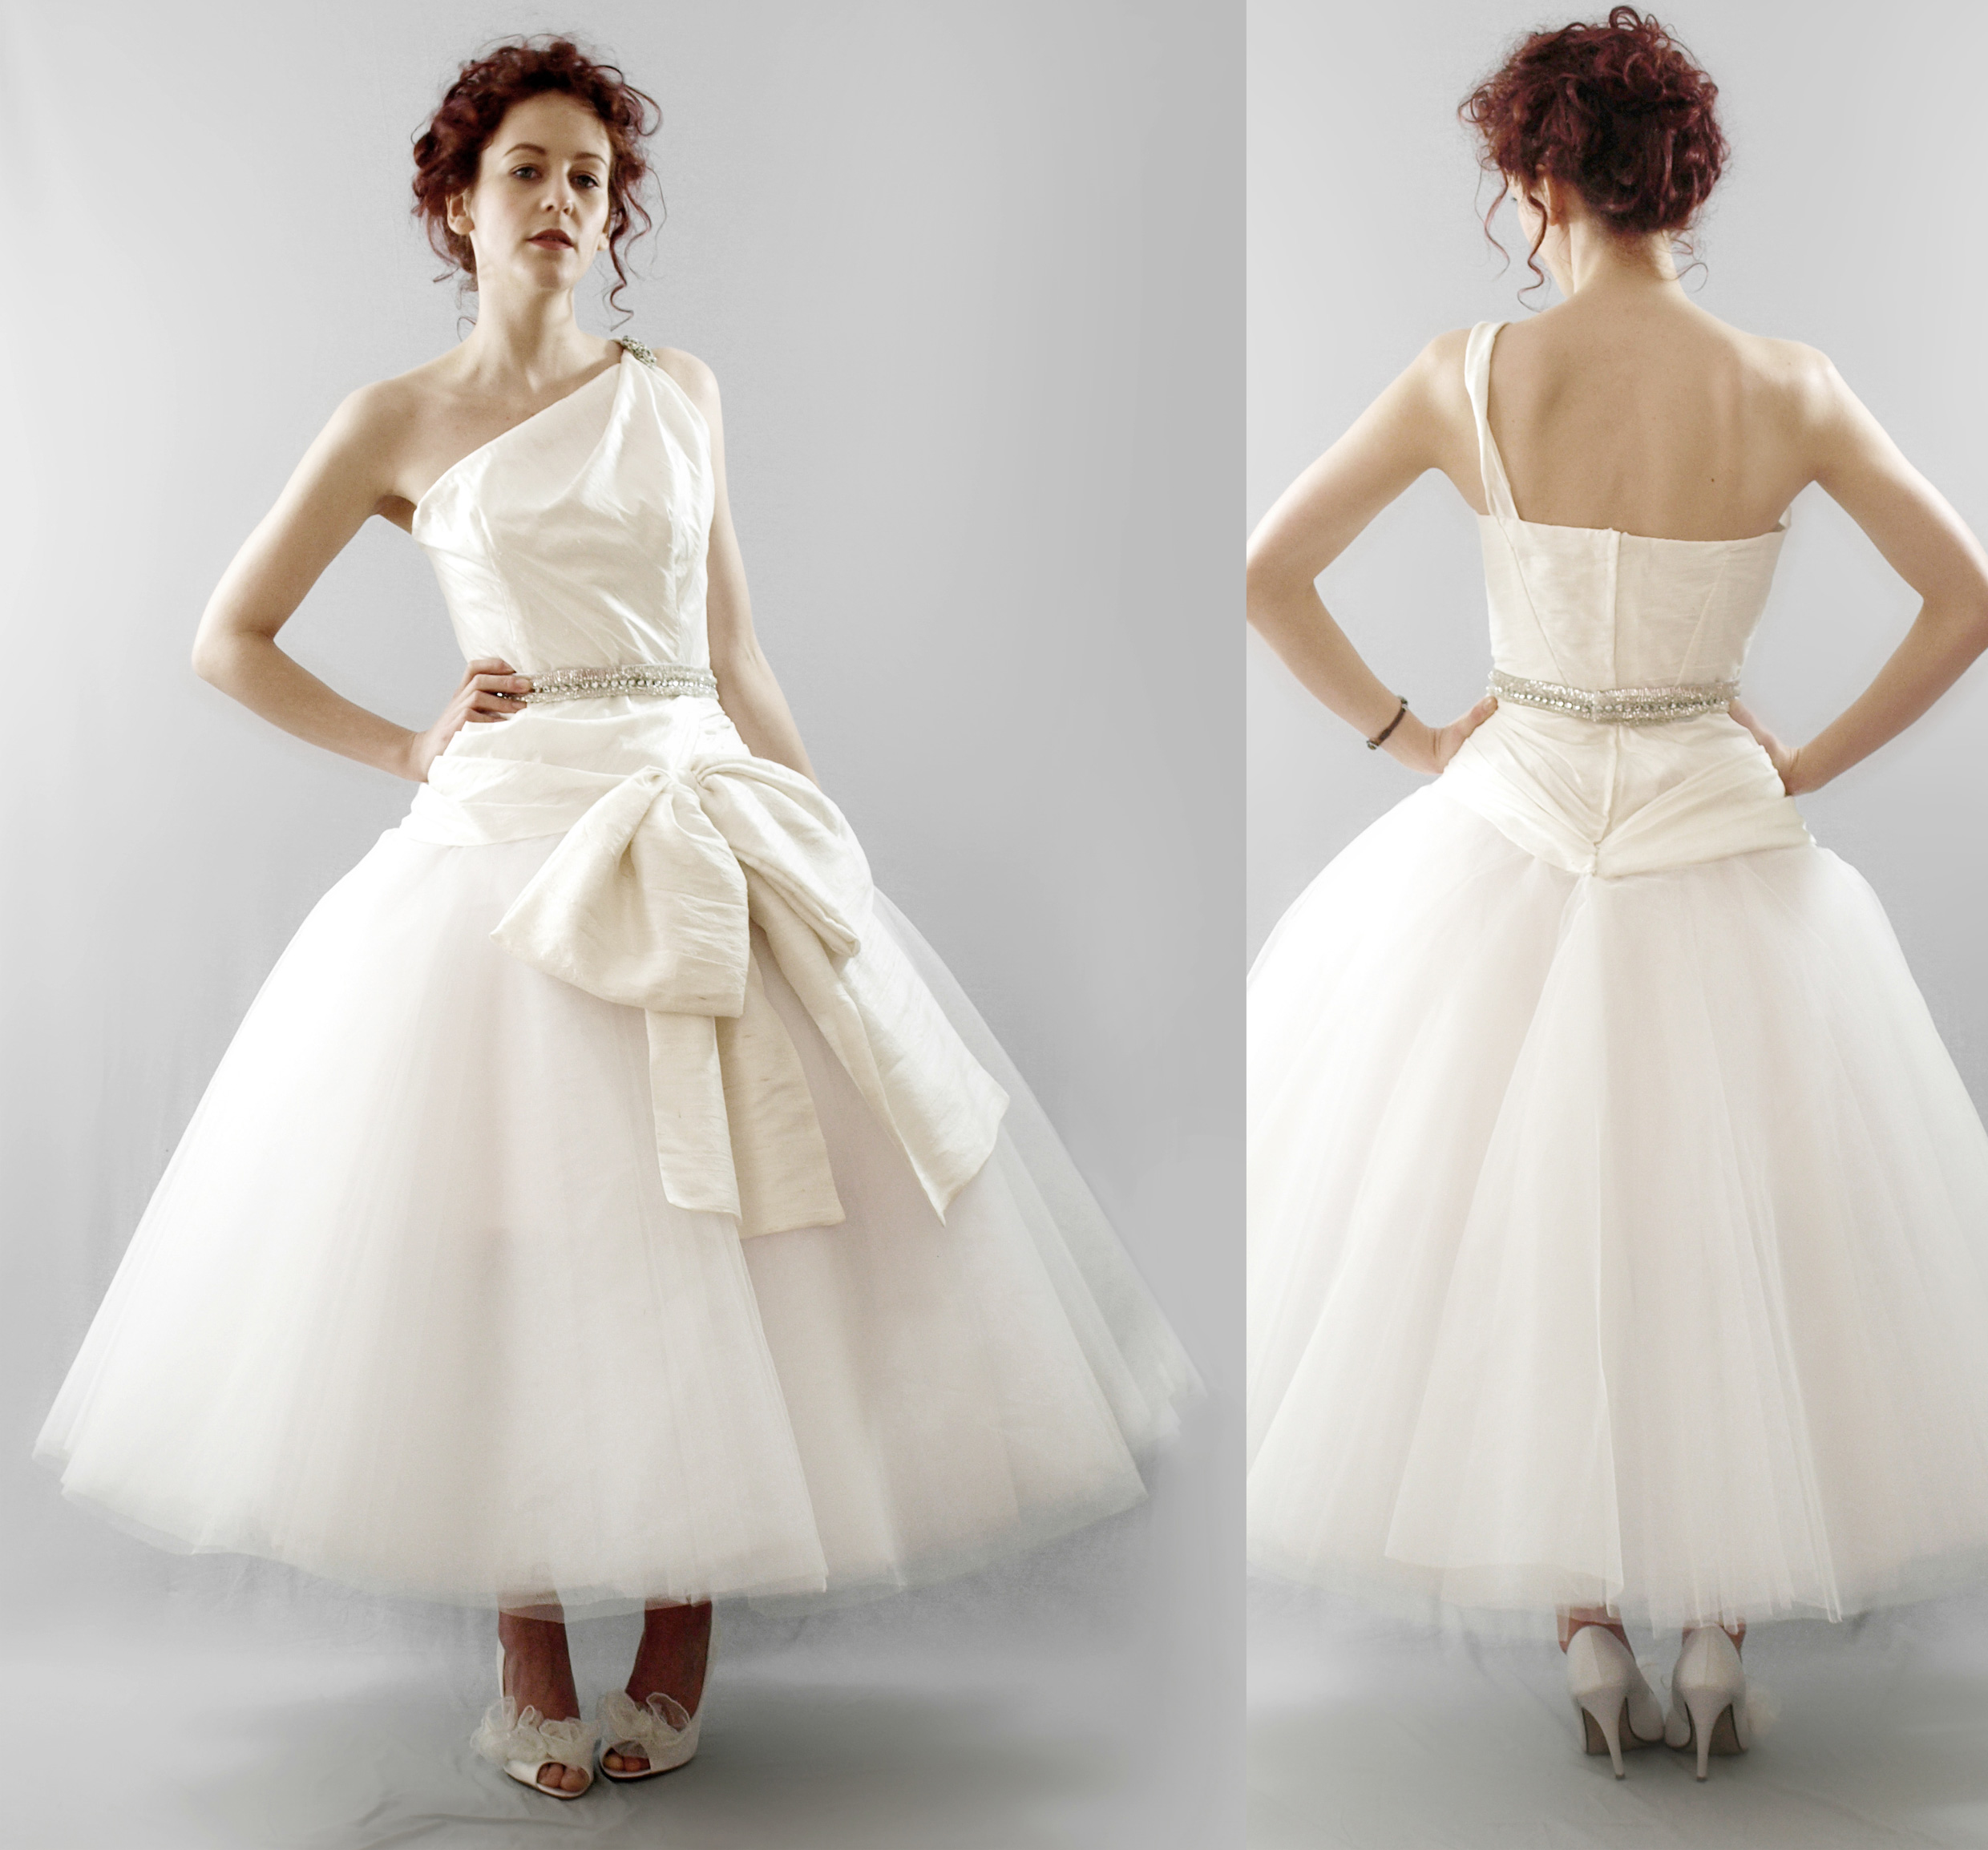 Chic Tea Length Vintage Inspired Wedding Dress With One Shoulder Neckline